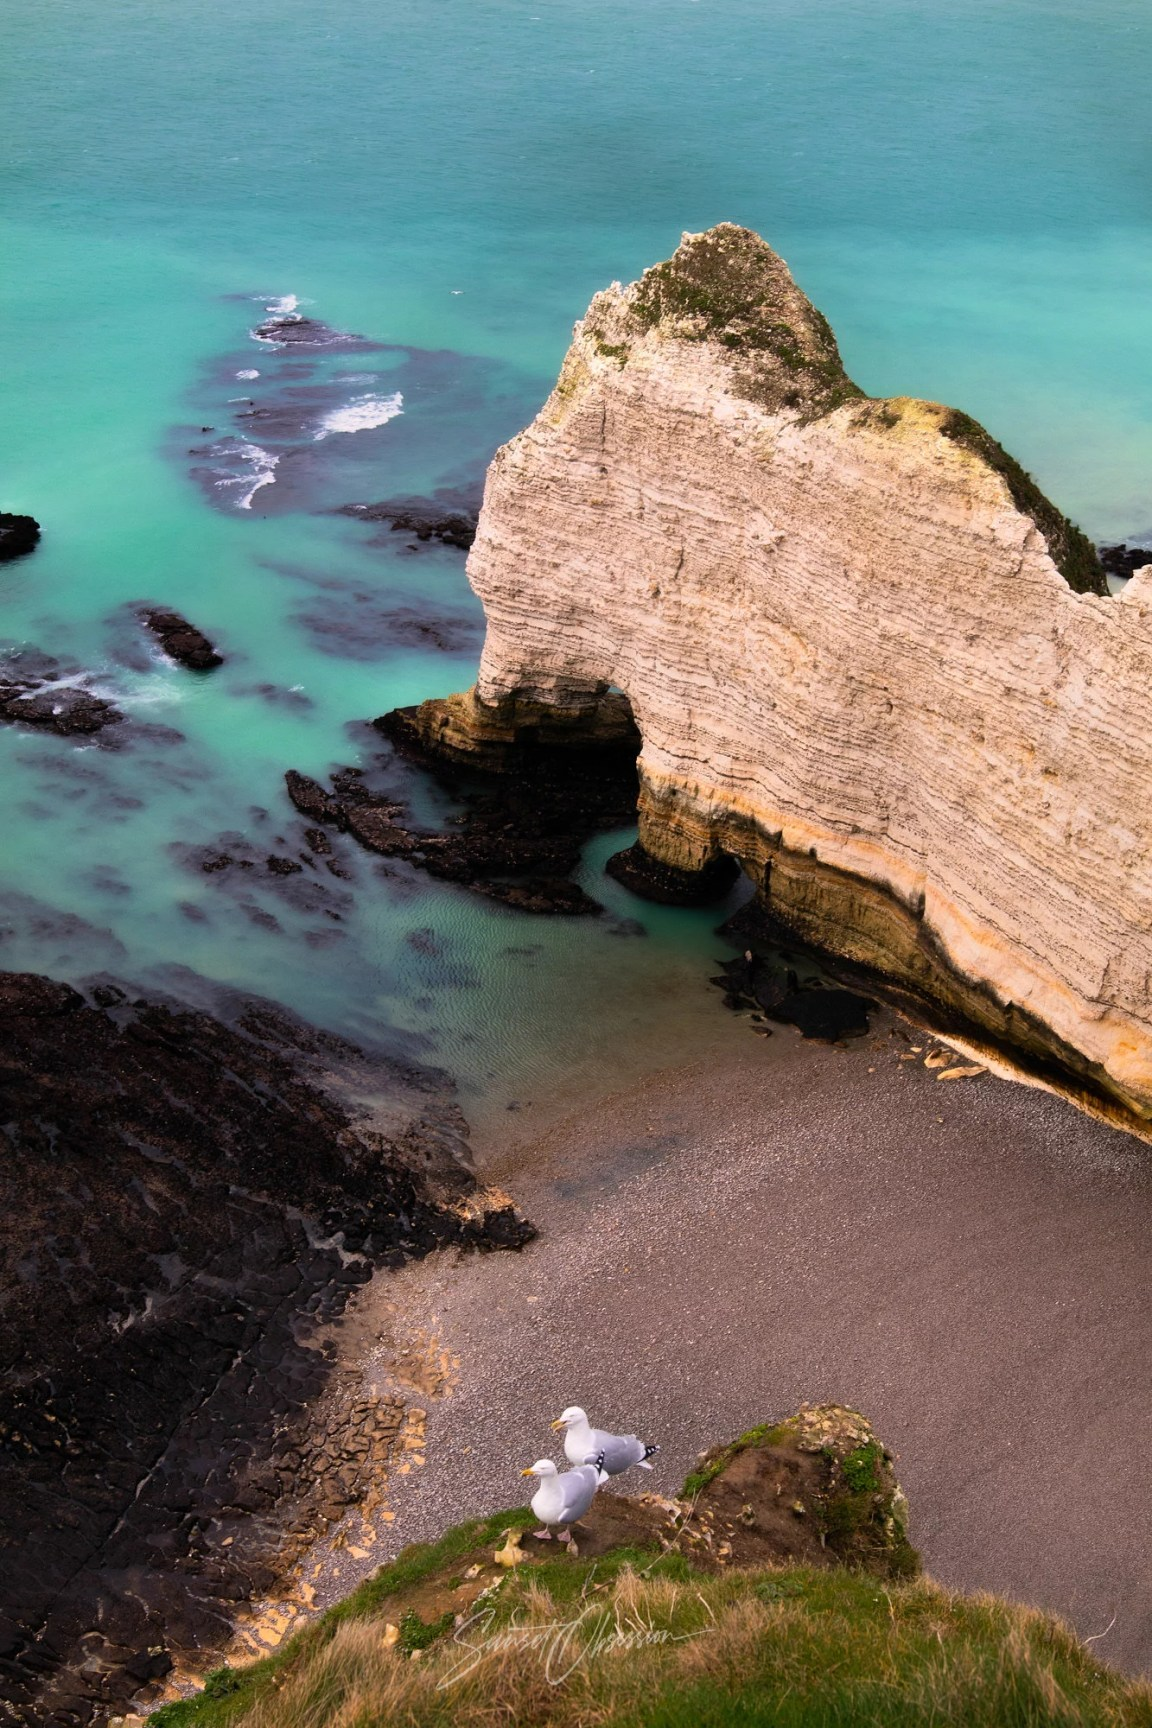 Seagulls in front of the Porte d'Amont natural arch, Etretat, France